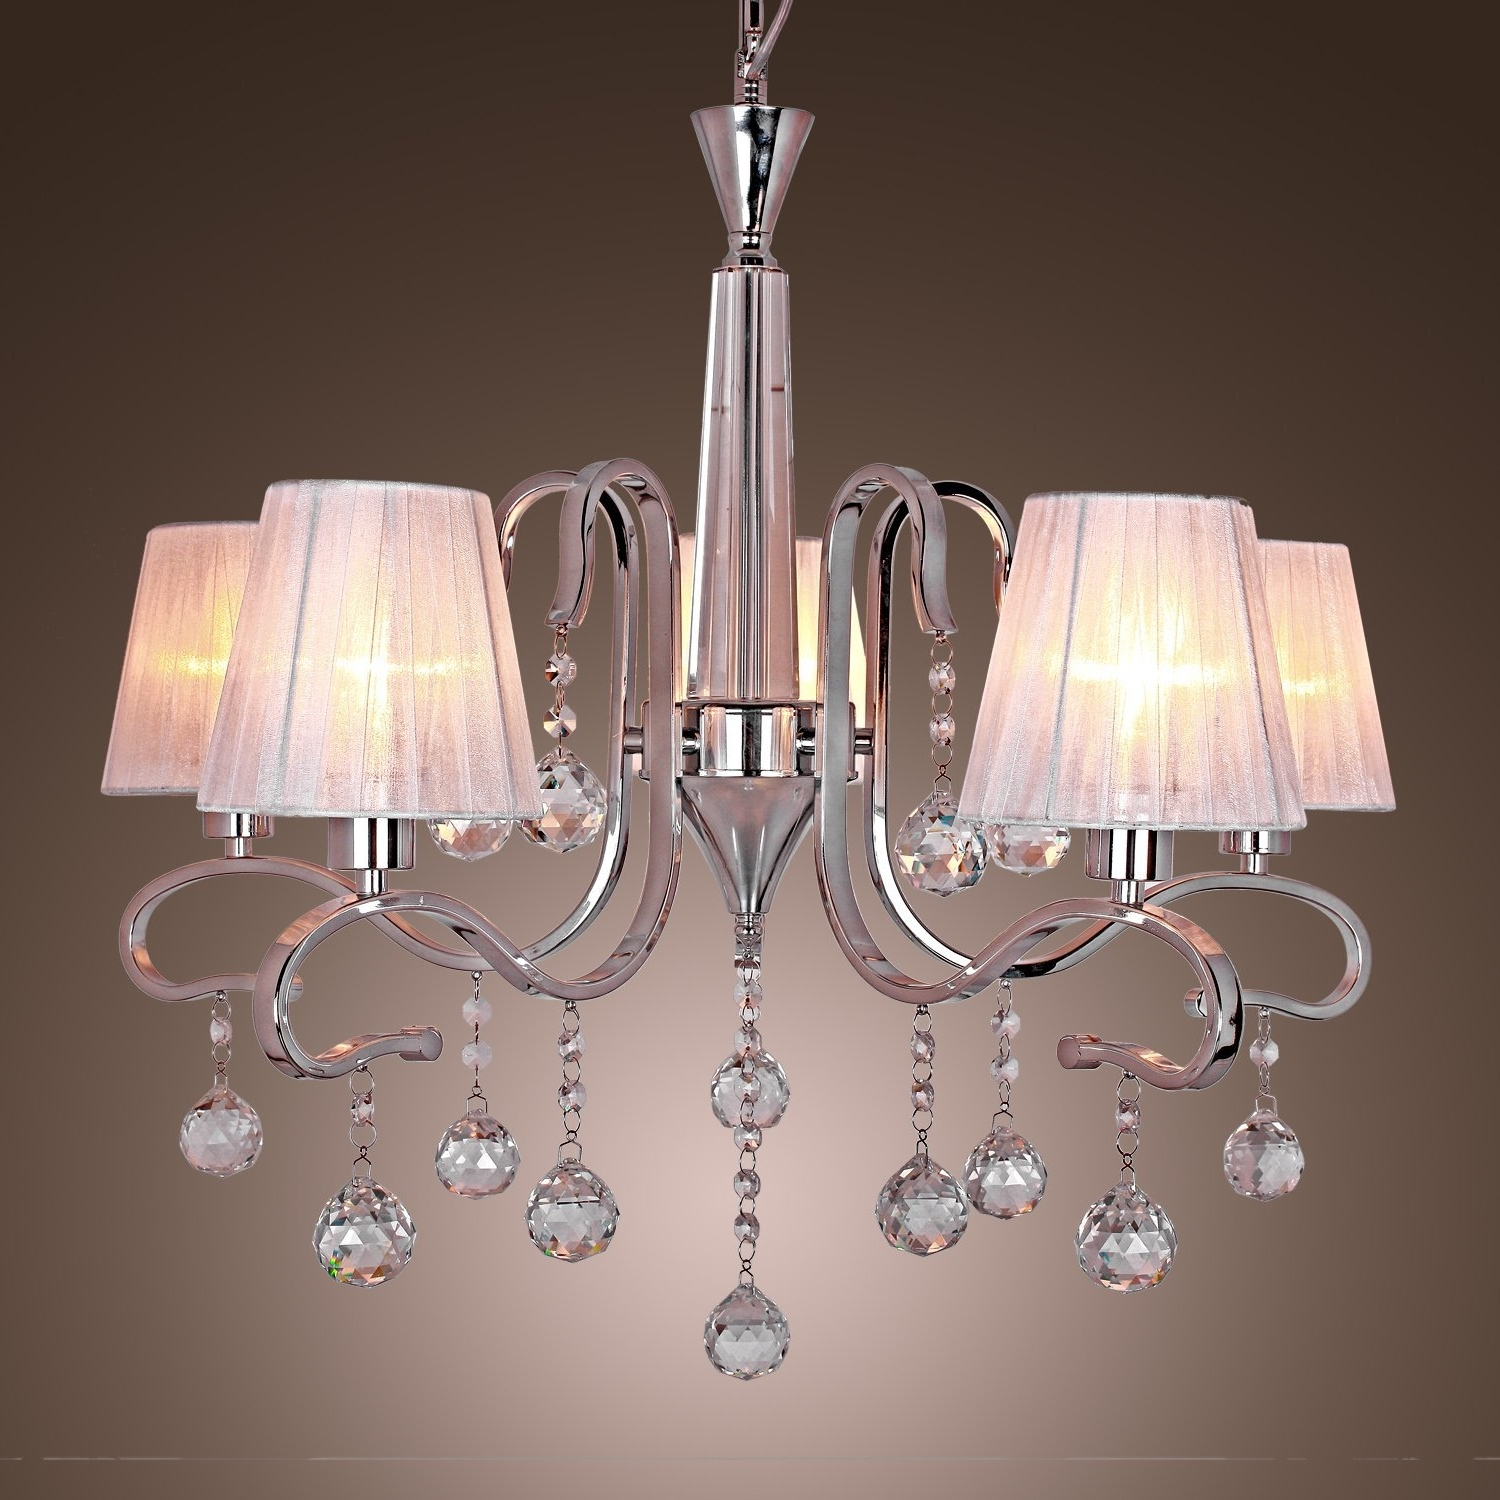 Famous Modern Crystal Chandeliers With 5 Lights White, Ceiling Light with regard to Crystal And Chrome Chandeliers